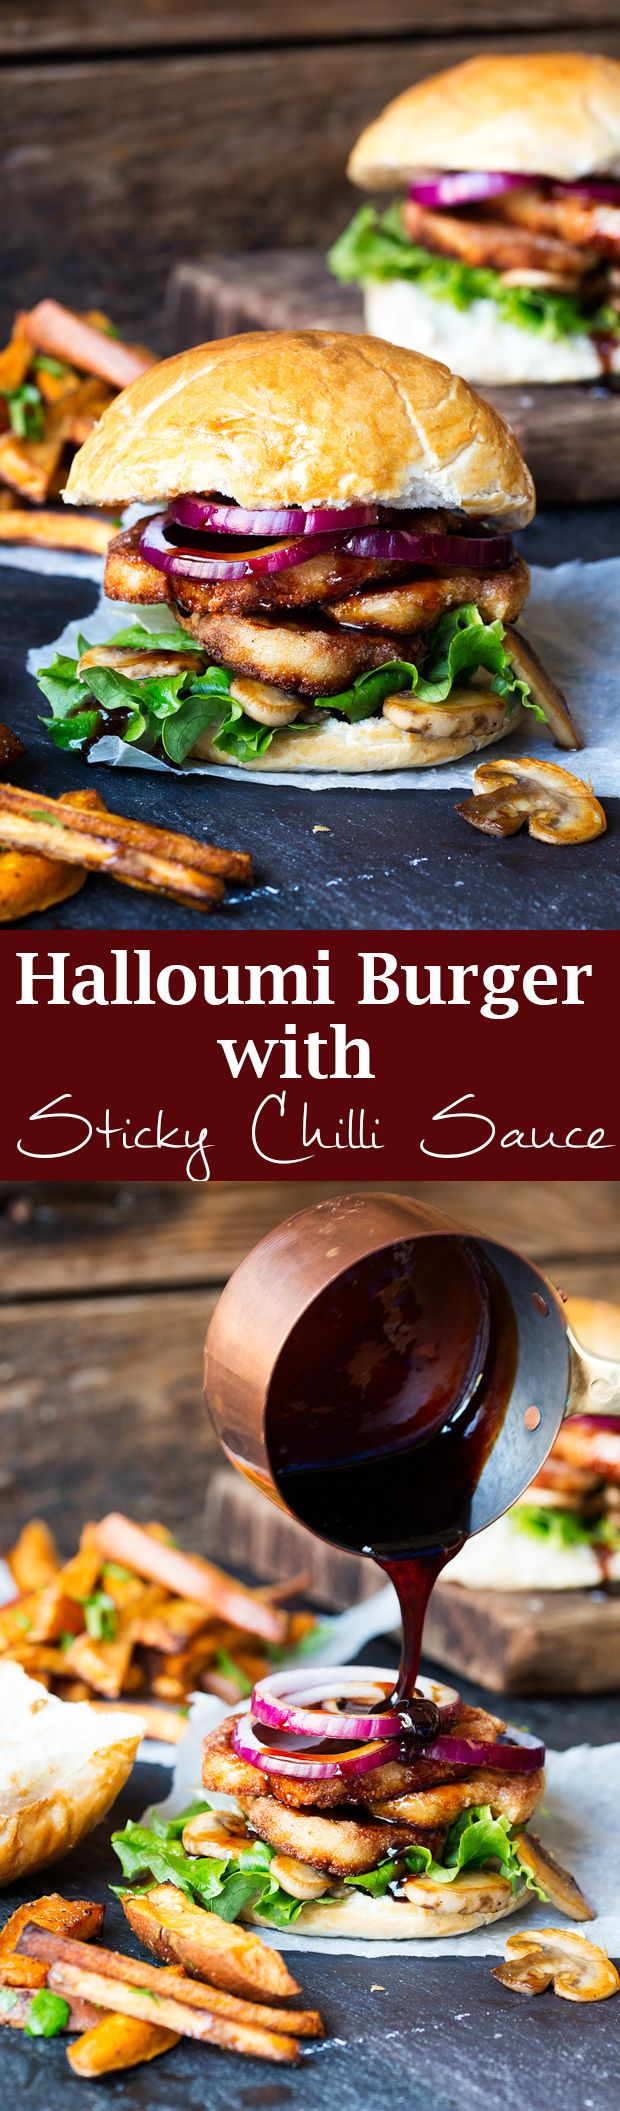 Halloumi burger with sticky chilli drizzle. A speedy and delicious dinner!